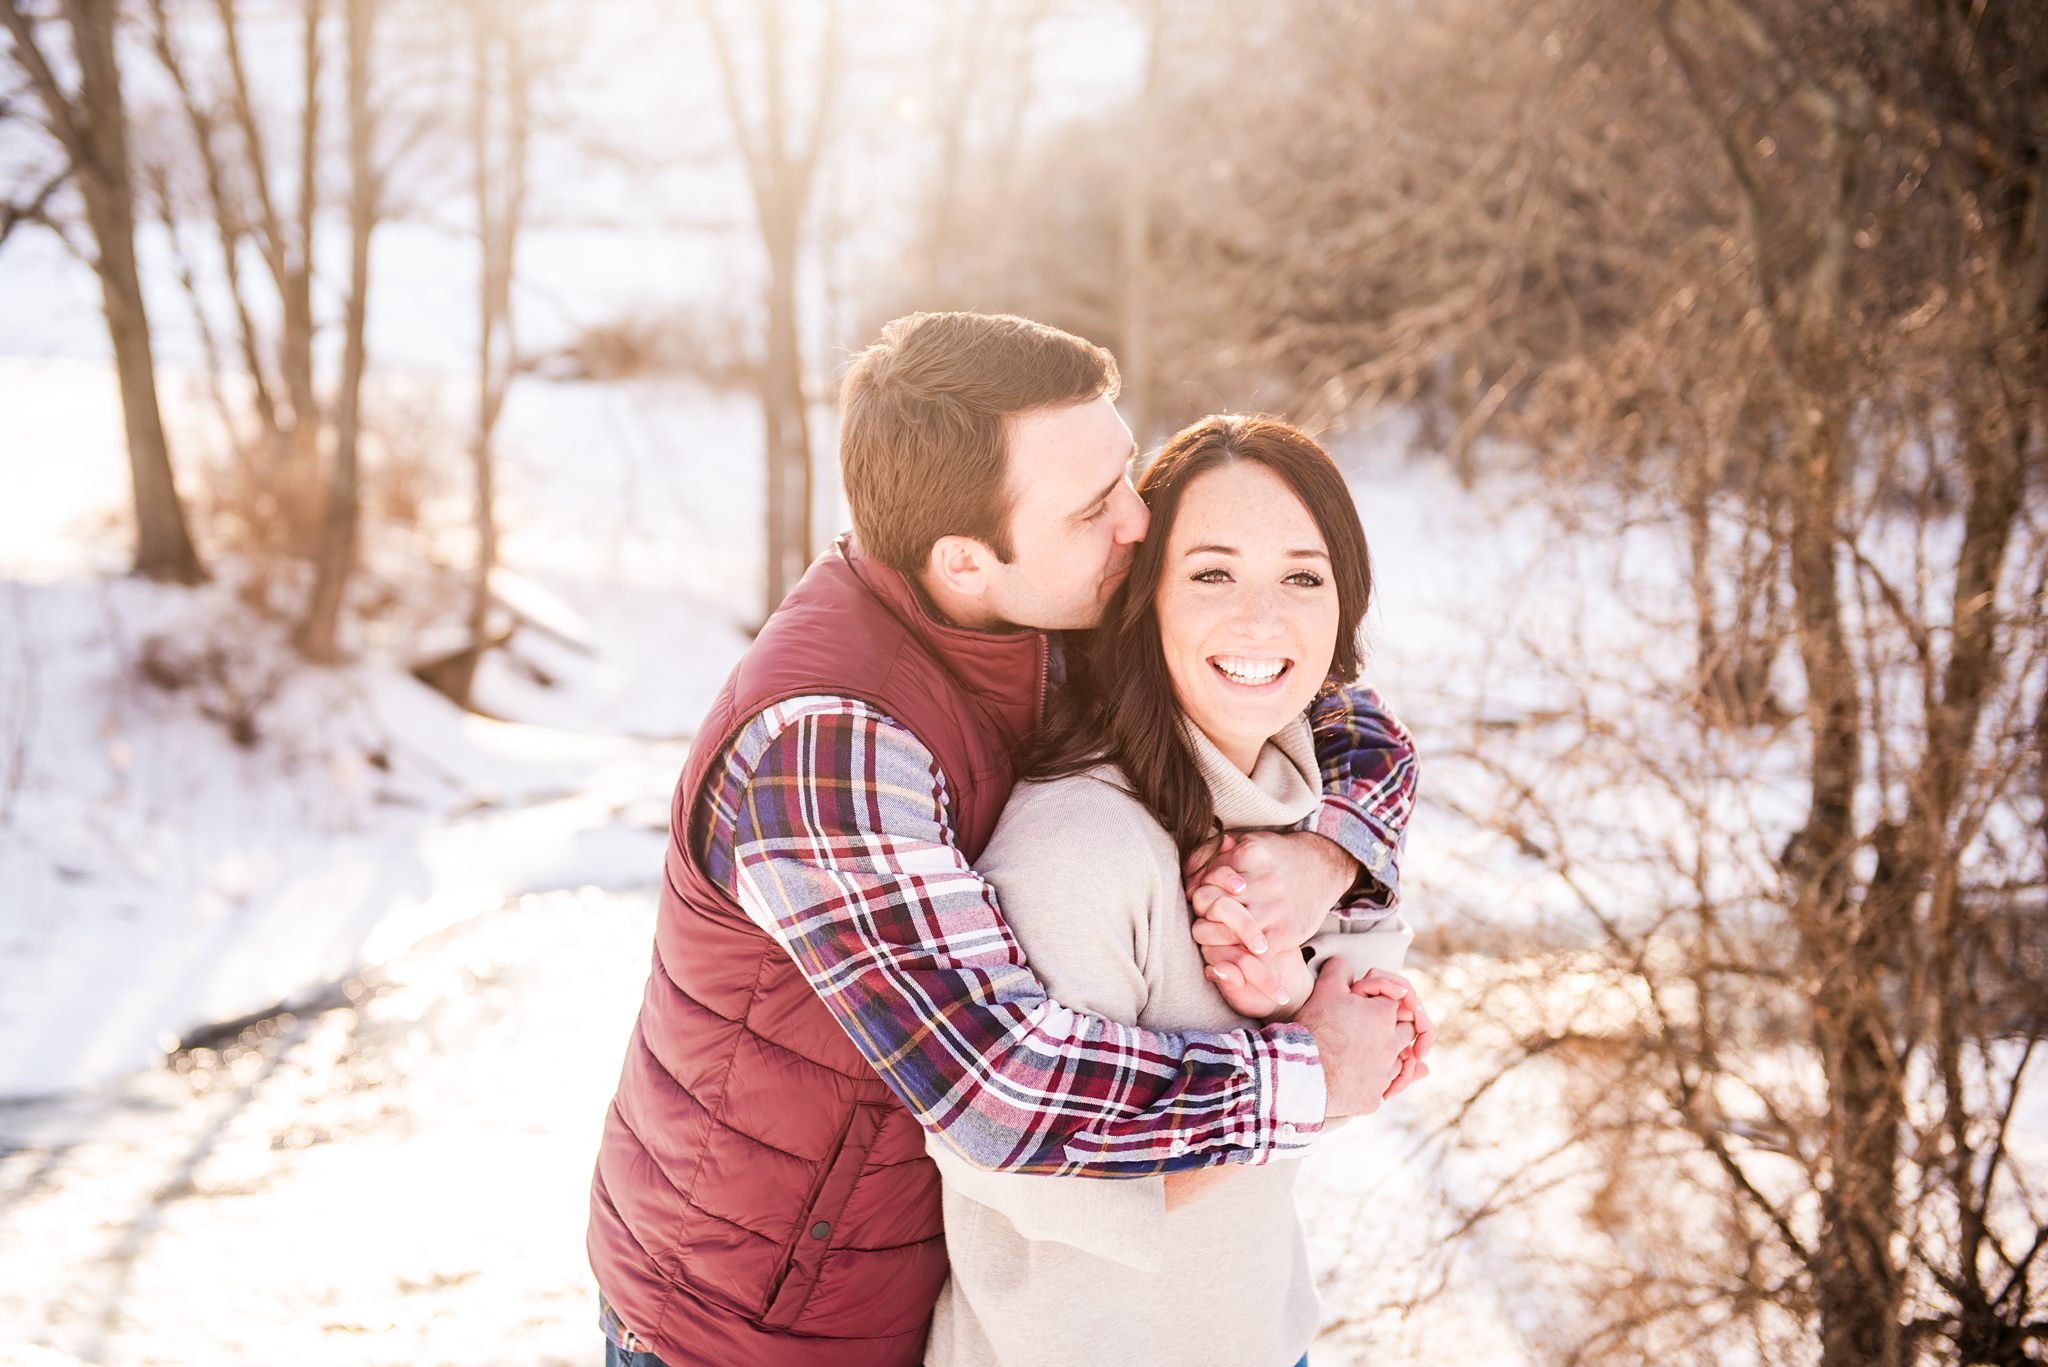 Fallbrook_Central_NY_Engagement_Session_JILL_STUDIO_Rochester_NY_Photographer_DSC_4717.jpg